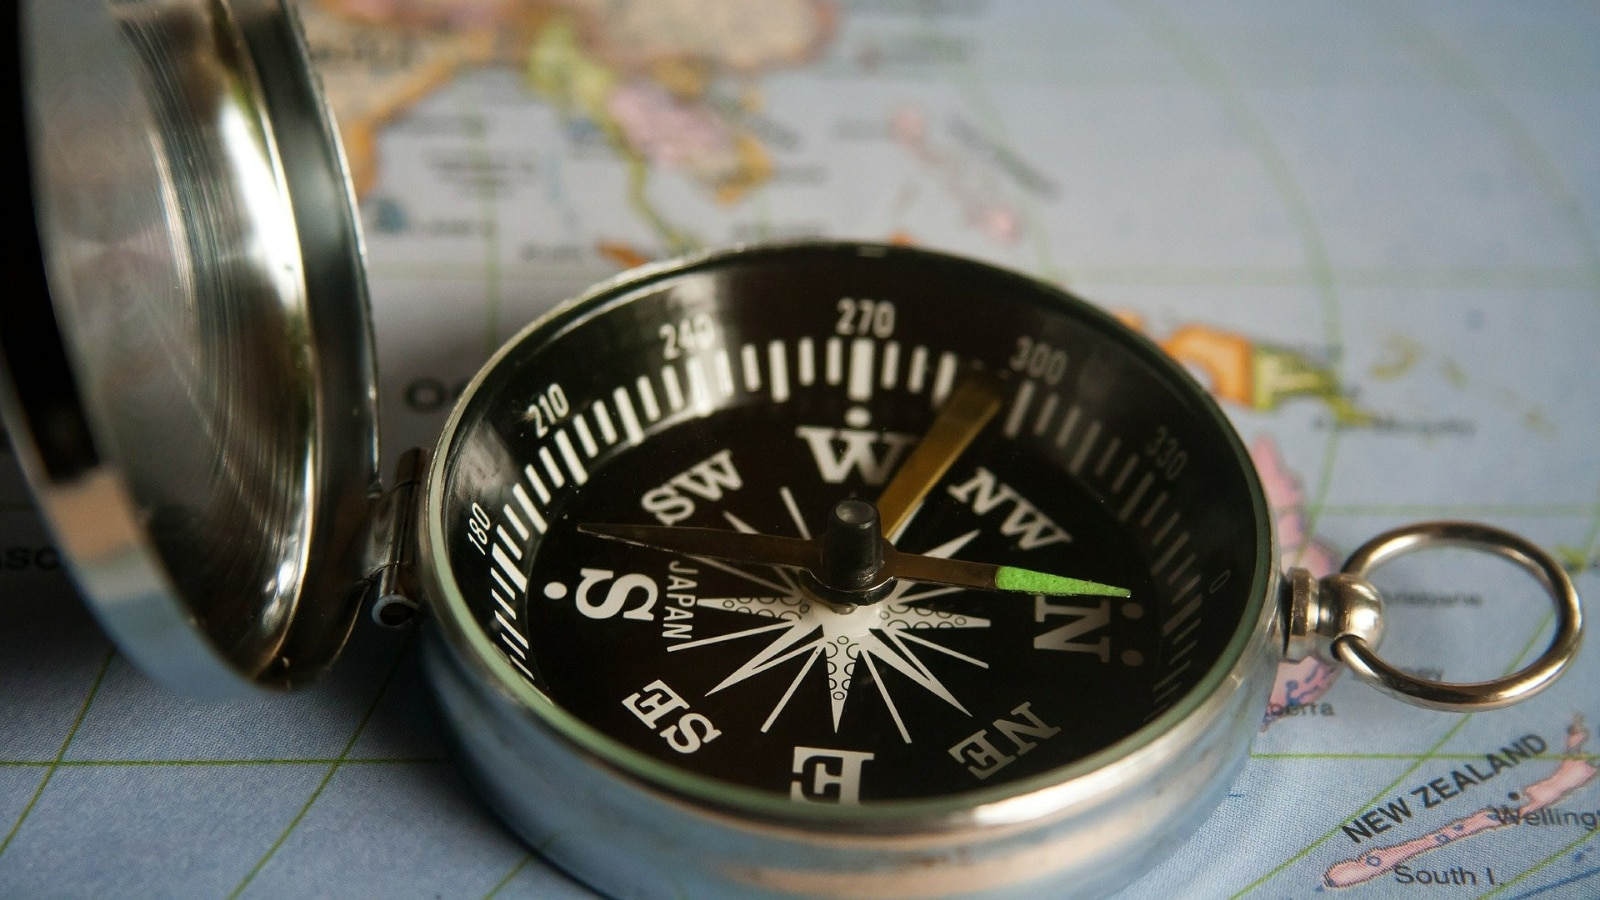 Magnetic compasses have used the geomagnetic field to orient travelers for centuries.